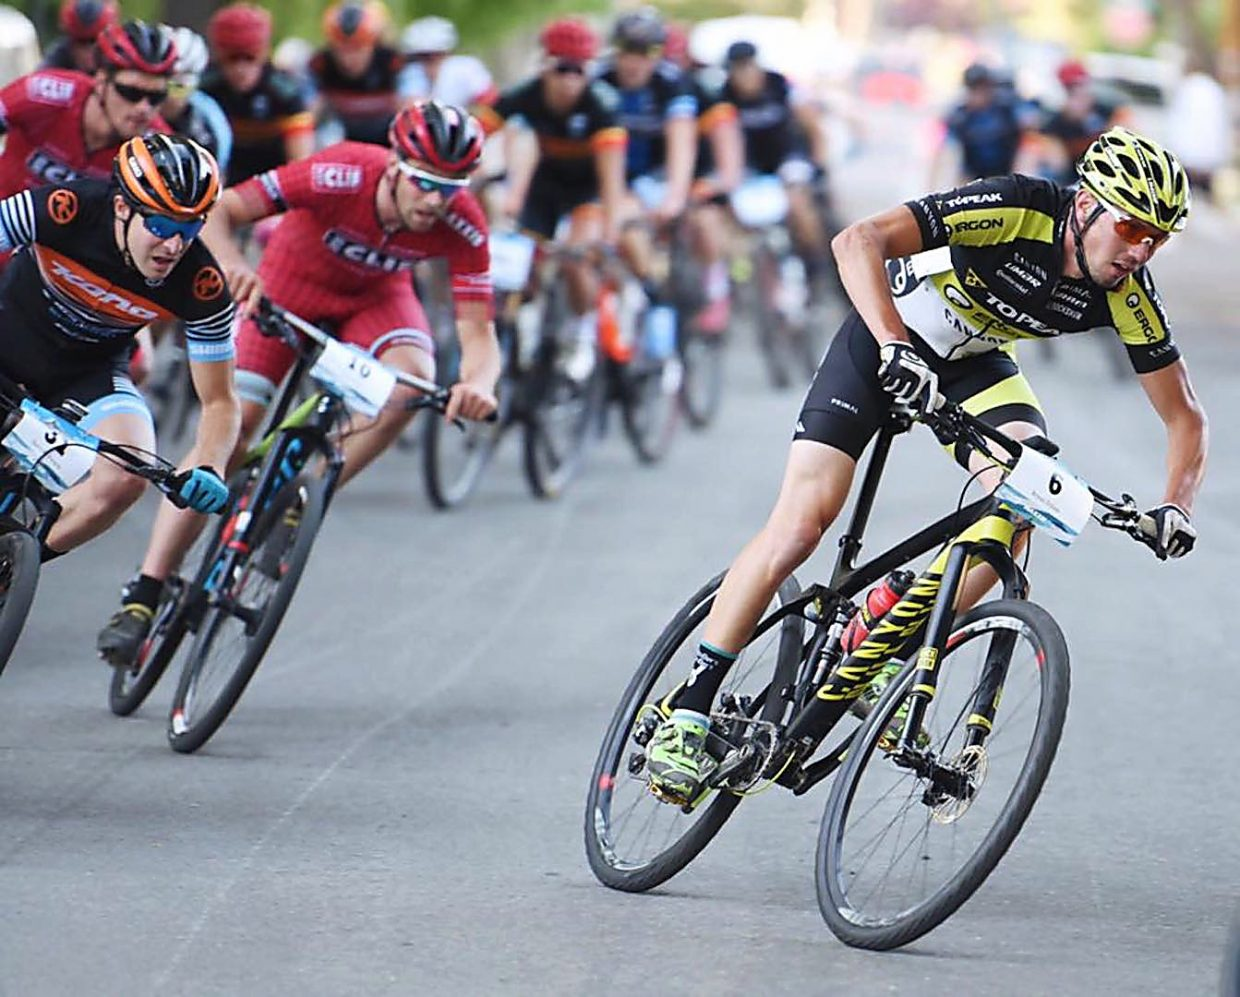 Topeak-Ergon pro Bryan Dillon trades dirt for pavement at a recent race. The 28-year-old native of Jackson, Wyoming is racing in the Leadville 100 on Aug. 13 before heading straight to Breckenridge for the Breck Epic from Aug. 14-19.